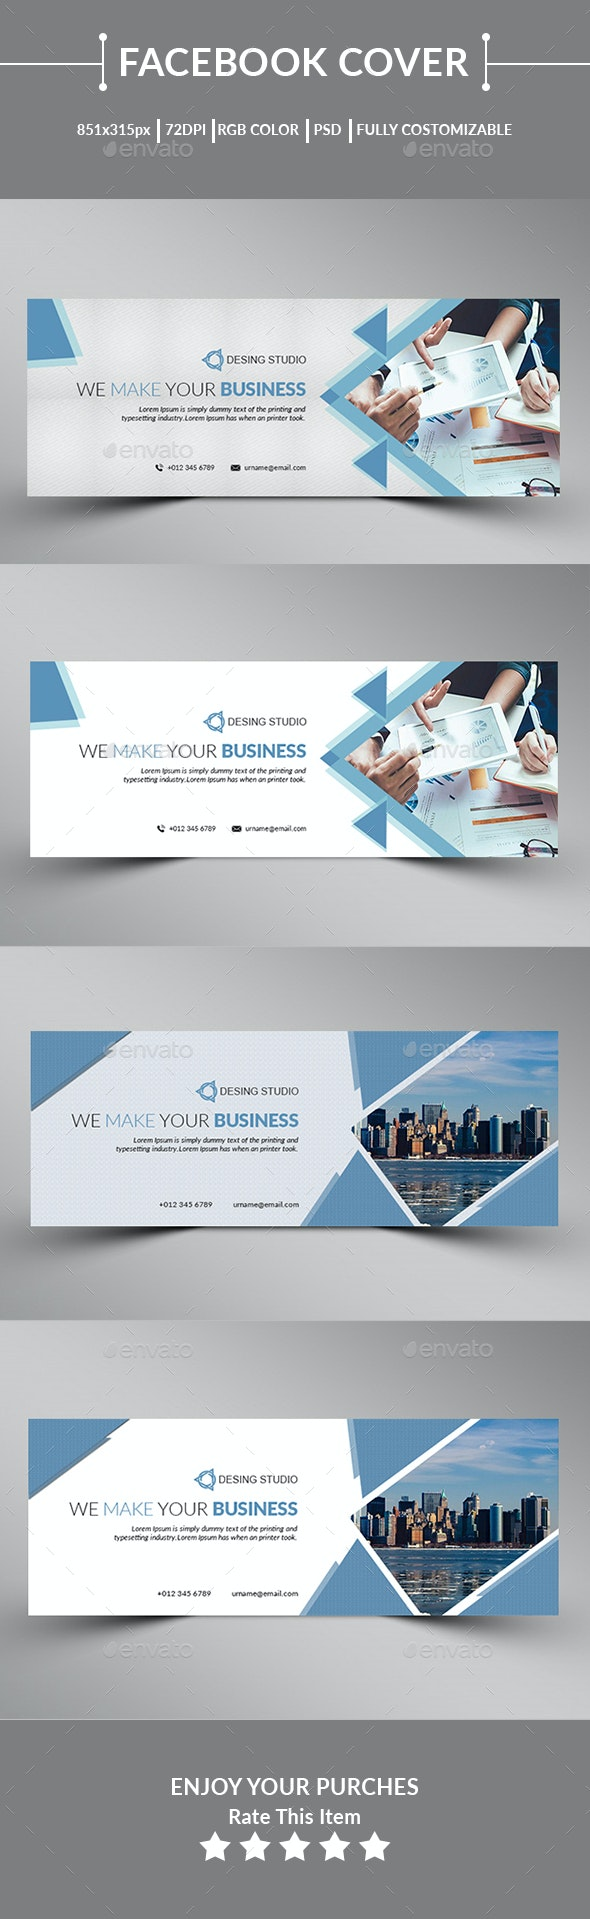 Corporate Facebook Cover - Facebook Timeline Covers Social Media